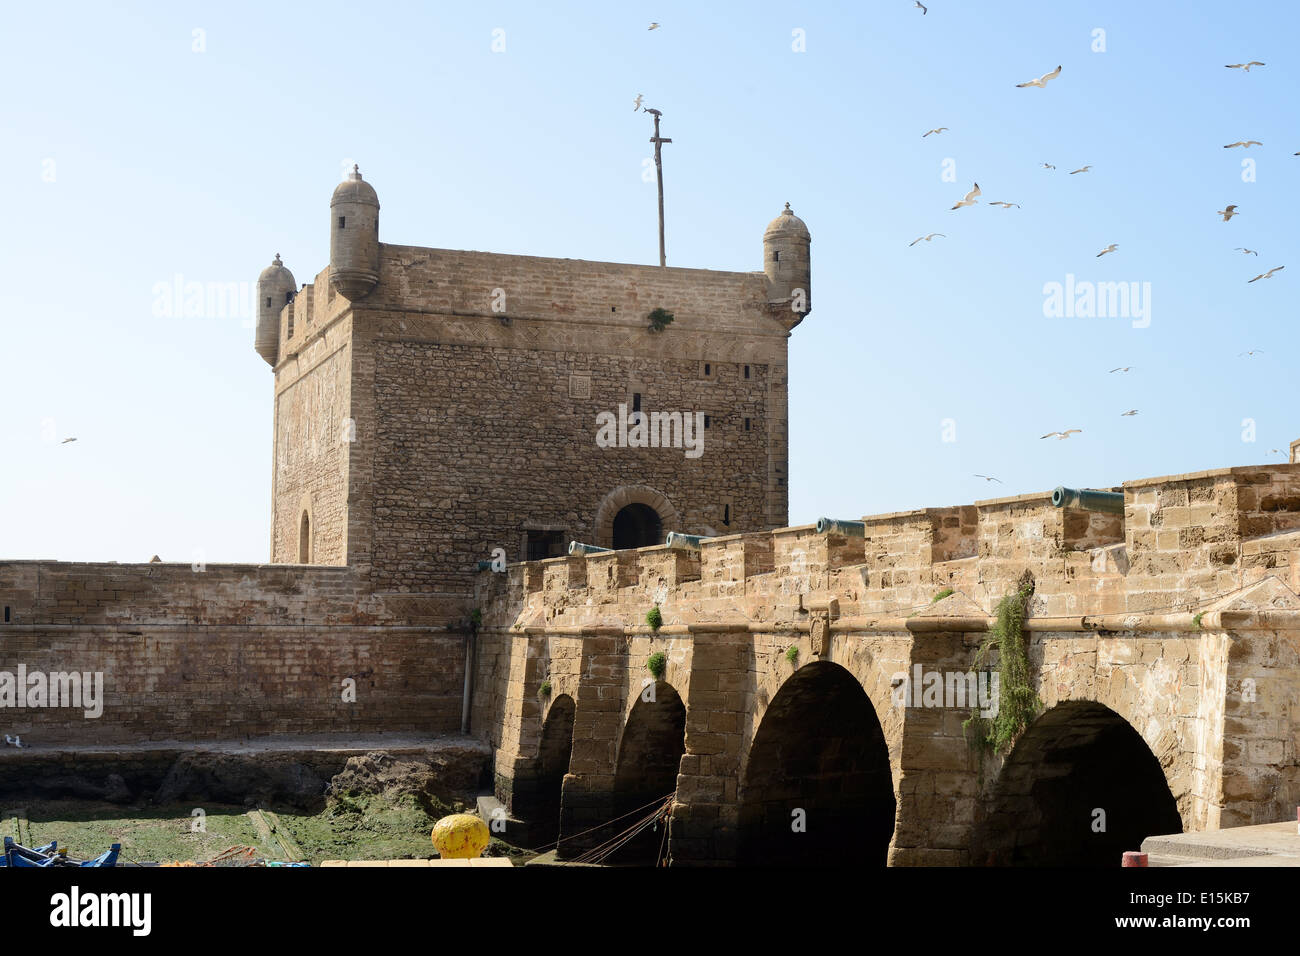 Fortifications showing tower and canons in Essaouira in Morroco - Stock Image